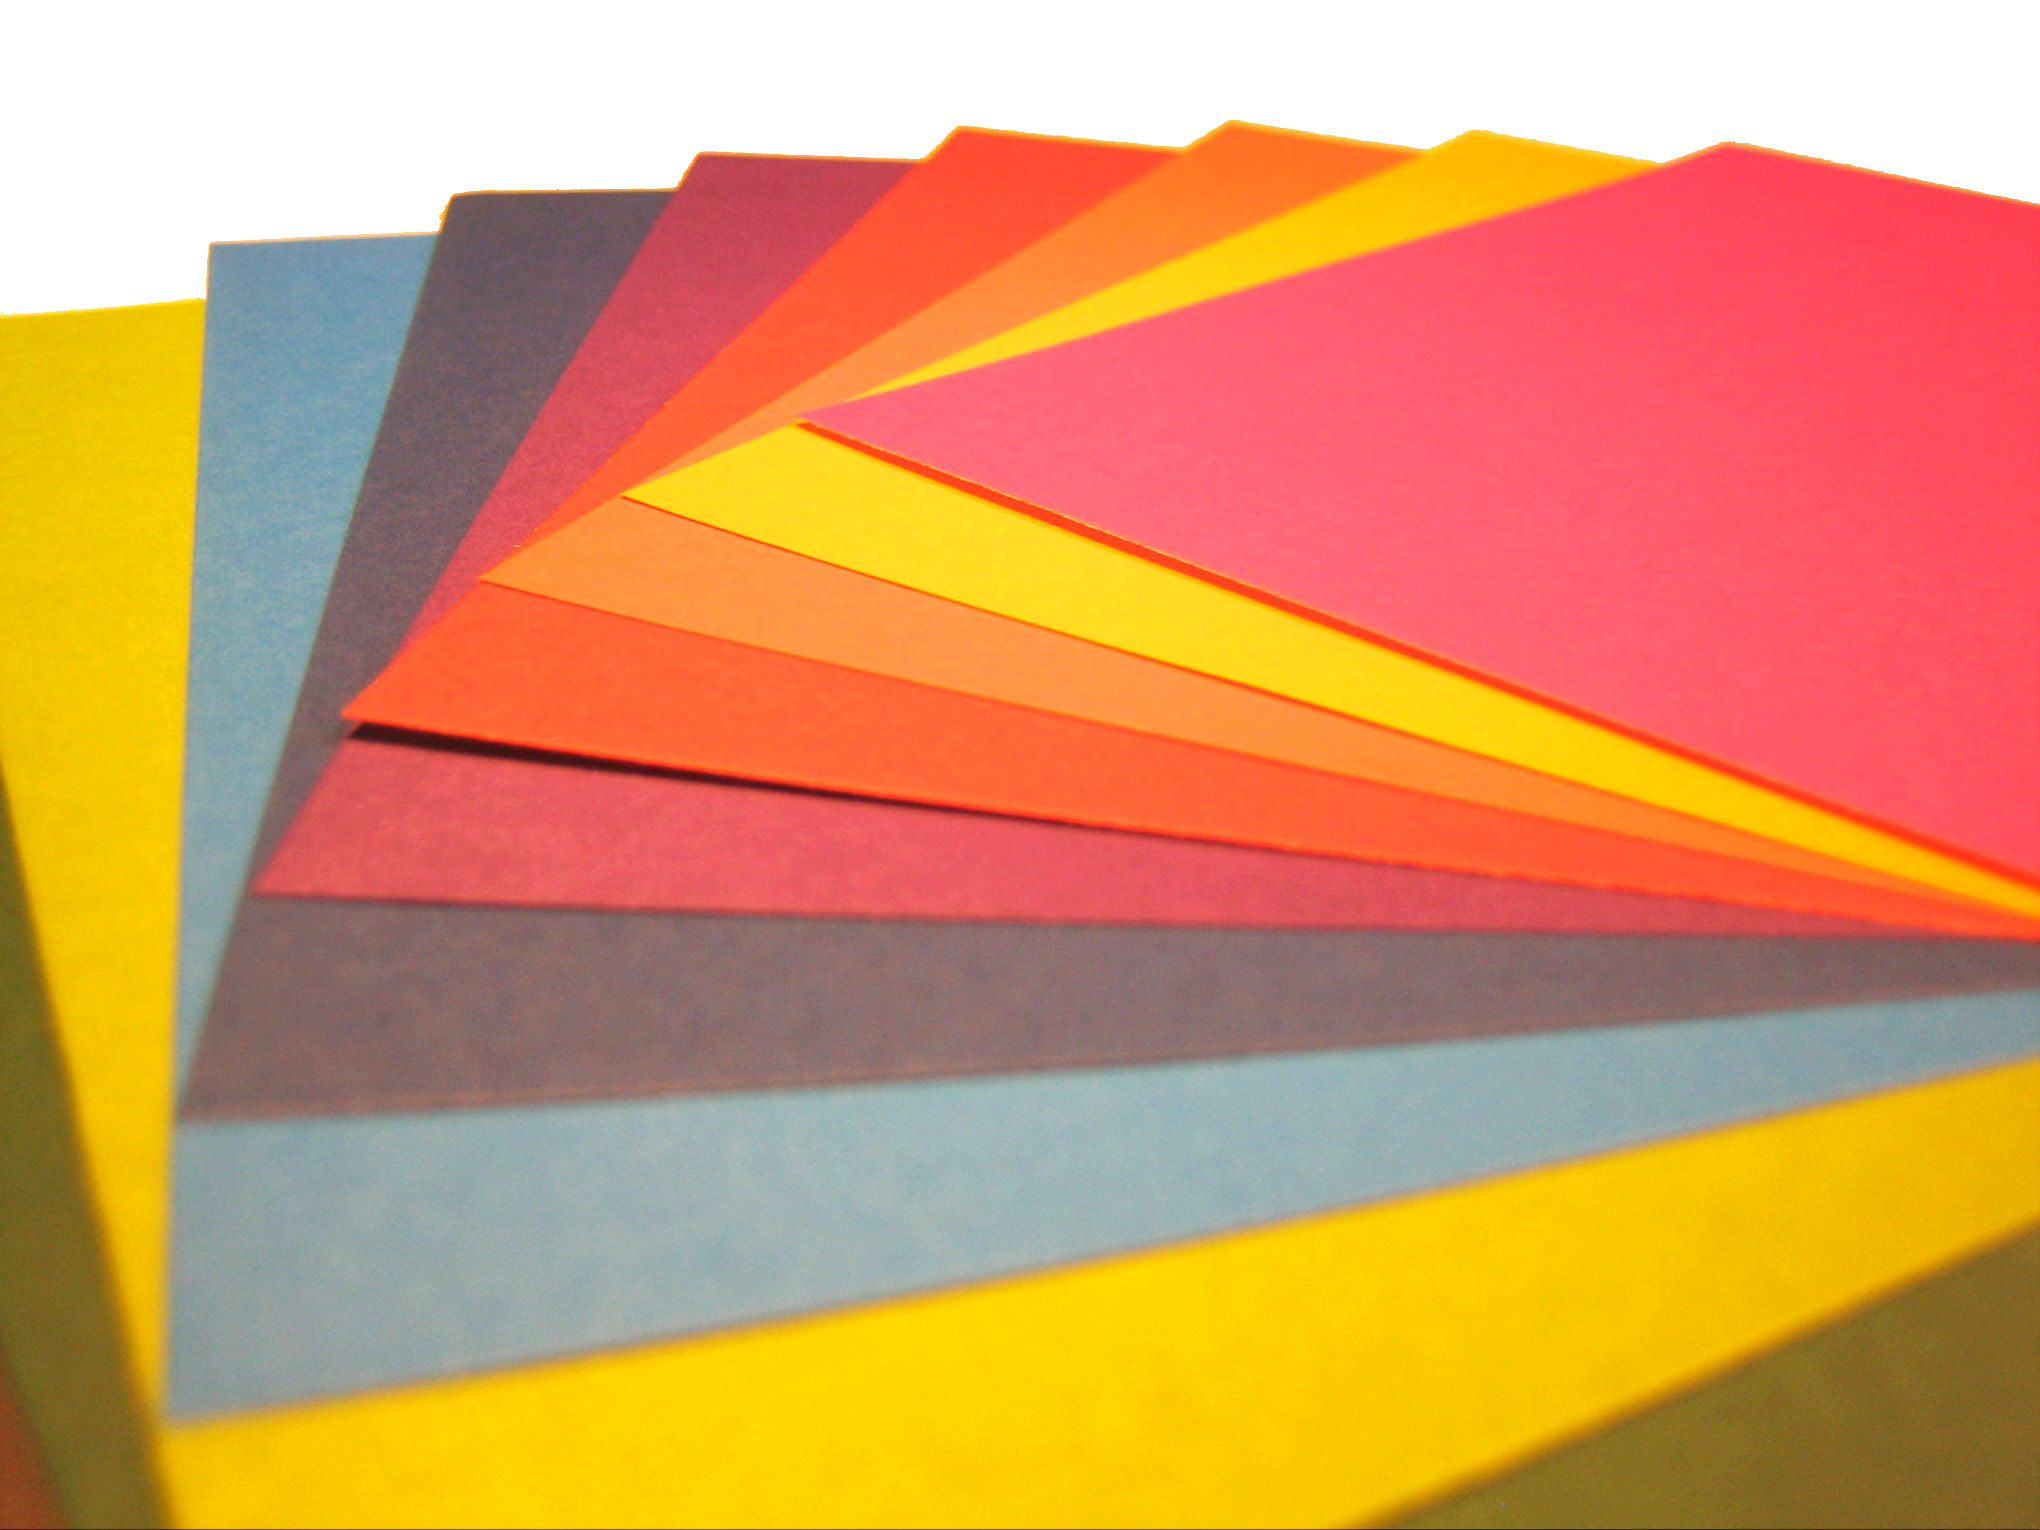 Mixed-Colour Origami Paper - Specially selected sets of Pantone colours, made with sustainably sourced, FSC-certified paper